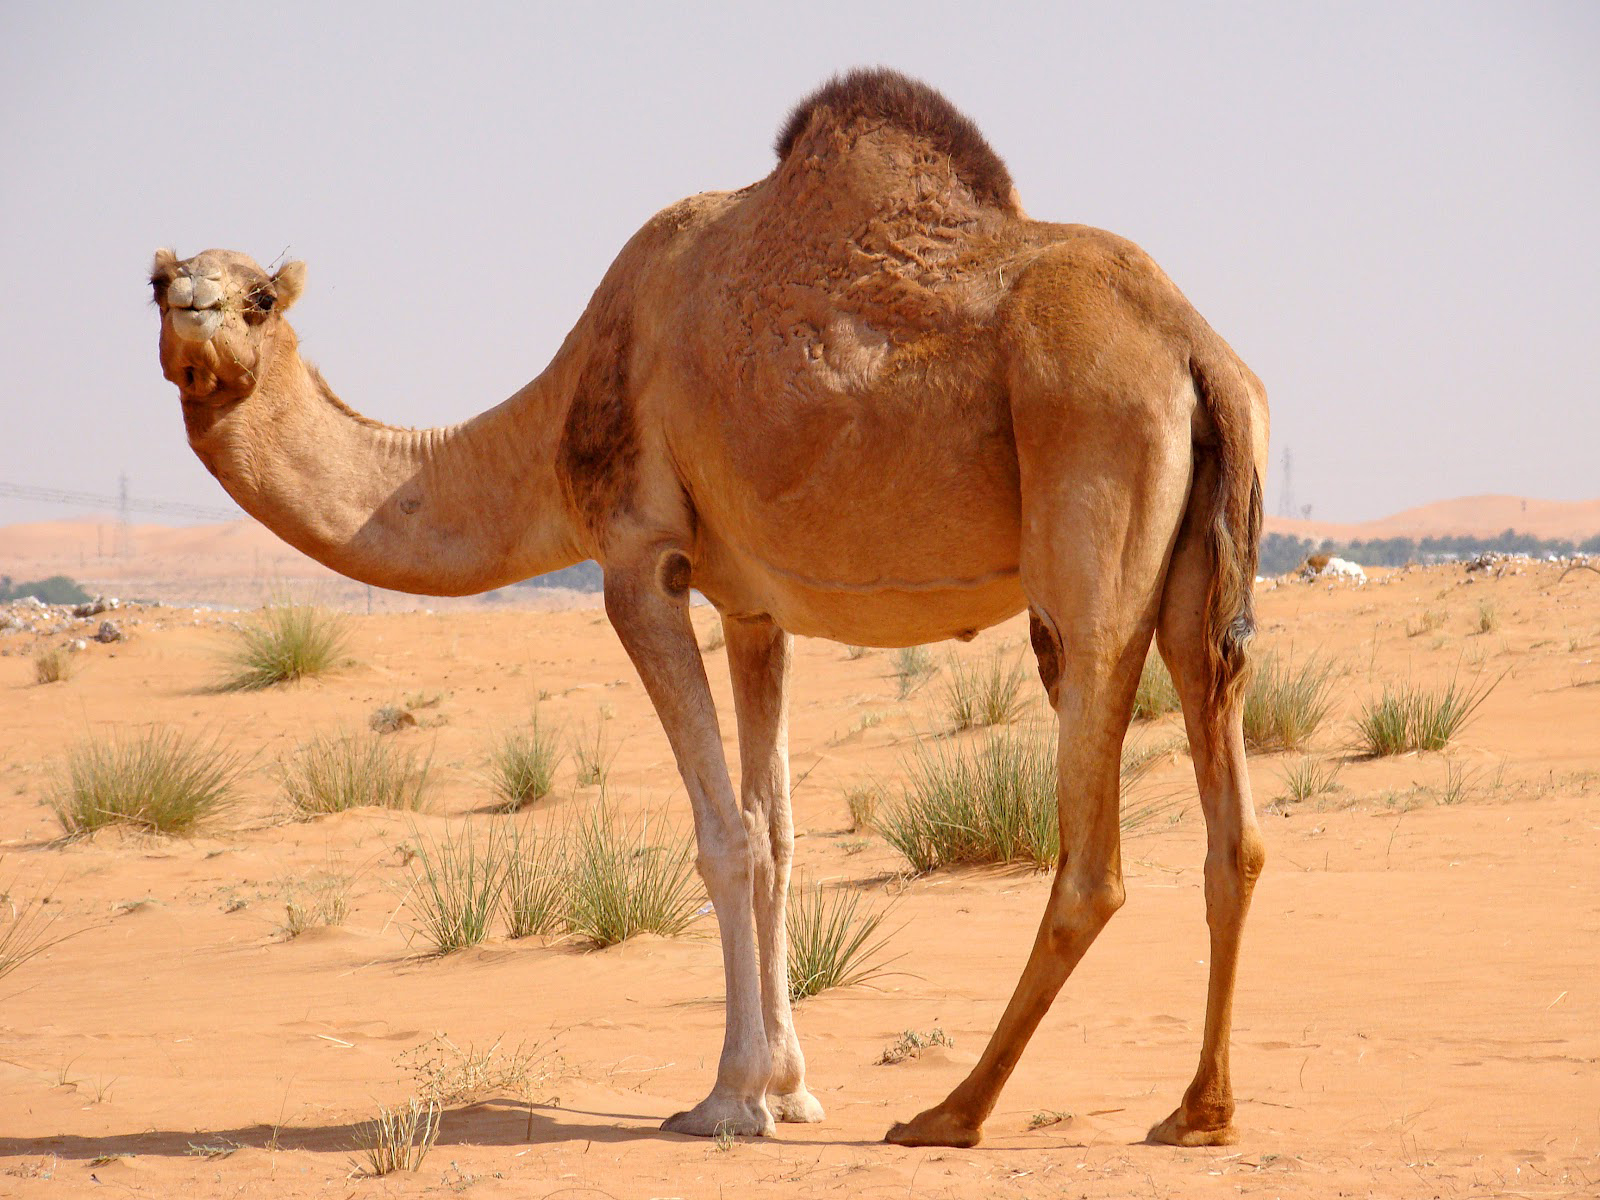 Camel with Hump on its Back